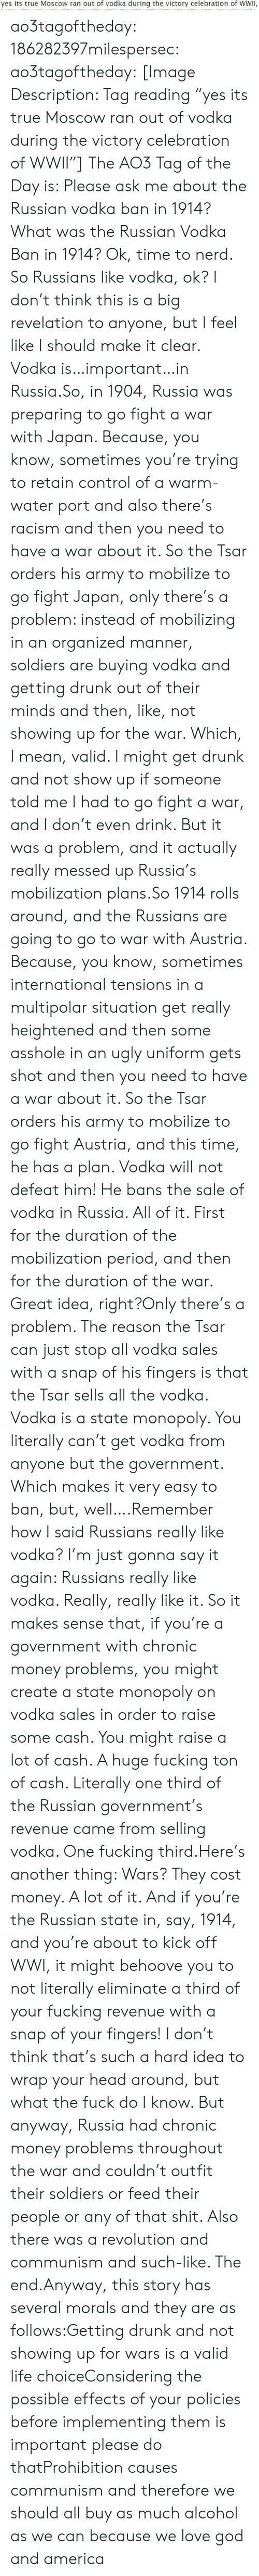 "Rolls: yes its true Moscow ran out of vodka during the victory celebration of WWII, ao3tagoftheday:  186282397milespersec:  ao3tagoftheday:  [Image Description: Tag reading ""yes its true Moscow ran out of vodka during the victory celebration of WWII""]  The AO3 Tag of the Day is: Please ask me about the Russian vodka ban in 1914?   What was the Russian Vodka Ban in 1914?  Ok, time to nerd. So Russians like vodka, ok? I don't think this is a big revelation to anyone, but I feel like I should make it clear. Vodka is…important…in Russia.So, in 1904, Russia was preparing to go fight a war with Japan. Because, you know, sometimes you're trying to retain control of a warm-water port and also there's racism and then you need to have a war about it. So the Tsar orders his army to mobilize to go fight Japan, only there's a problem: instead of mobilizing in an organized manner, soldiers are buying vodka and getting drunk out of their minds and then, like, not showing up for the war. Which, I mean, valid. I might get drunk and not show up if someone told me I had to go fight a war, and I don't even drink. But it was a problem, and it actually really messed up Russia's mobilization plans.So 1914 rolls around, and the Russians are going to go to war with Austria. Because, you know, sometimes international tensions in a multipolar situation get really heightened and then some asshole in an ugly uniform gets shot and then you need to have a war about it. So the Tsar orders his army to mobilize to go fight Austria, and this time, he has a plan. Vodka will not defeat him! He bans the sale of vodka in Russia. All of it. First for the duration of the mobilization period, and then for the duration of the war. Great idea, right?Only there's a problem. The reason the Tsar can just stop all vodka sales with a snap of his fingers is that the Tsar sells all the vodka. Vodka is a state monopoly. You literally can't get vodka from anyone but the government. Which makes it very easy to ban, but, well….Remember how I said Russians really like vodka? I'm just gonna say it again: Russians really like vodka. Really, really like it. So it makes sense that, if you're a government with chronic money problems, you might create a state monopoly on vodka sales in order to raise some cash. You might raise a lot of cash. A huge fucking ton of cash. Literally one third of the Russian government's revenue came from selling vodka. One fucking third.Here's another thing: Wars? They cost money. A lot of it. And if you're the Russian state in, say, 1914, and you're about to kick off WWI, it might behoove you to not literally eliminate a third of your fucking revenue with a snap of your fingers! I don't think that's such a hard idea to wrap your head around, but what the fuck do I know. But anyway, Russia had chronic money problems throughout the war and couldn't outfit their soldiers or feed their people or any of that shit. Also there was a revolution and communism and such-like. The end.Anyway, this story has several morals and they are as follows:Getting drunk and not showing up for wars is a valid life choiceConsidering the possible effects of your policies before implementing them is important please do thatProhibition causes communism and therefore we should all buy as much alcohol as we can because we love god and america"